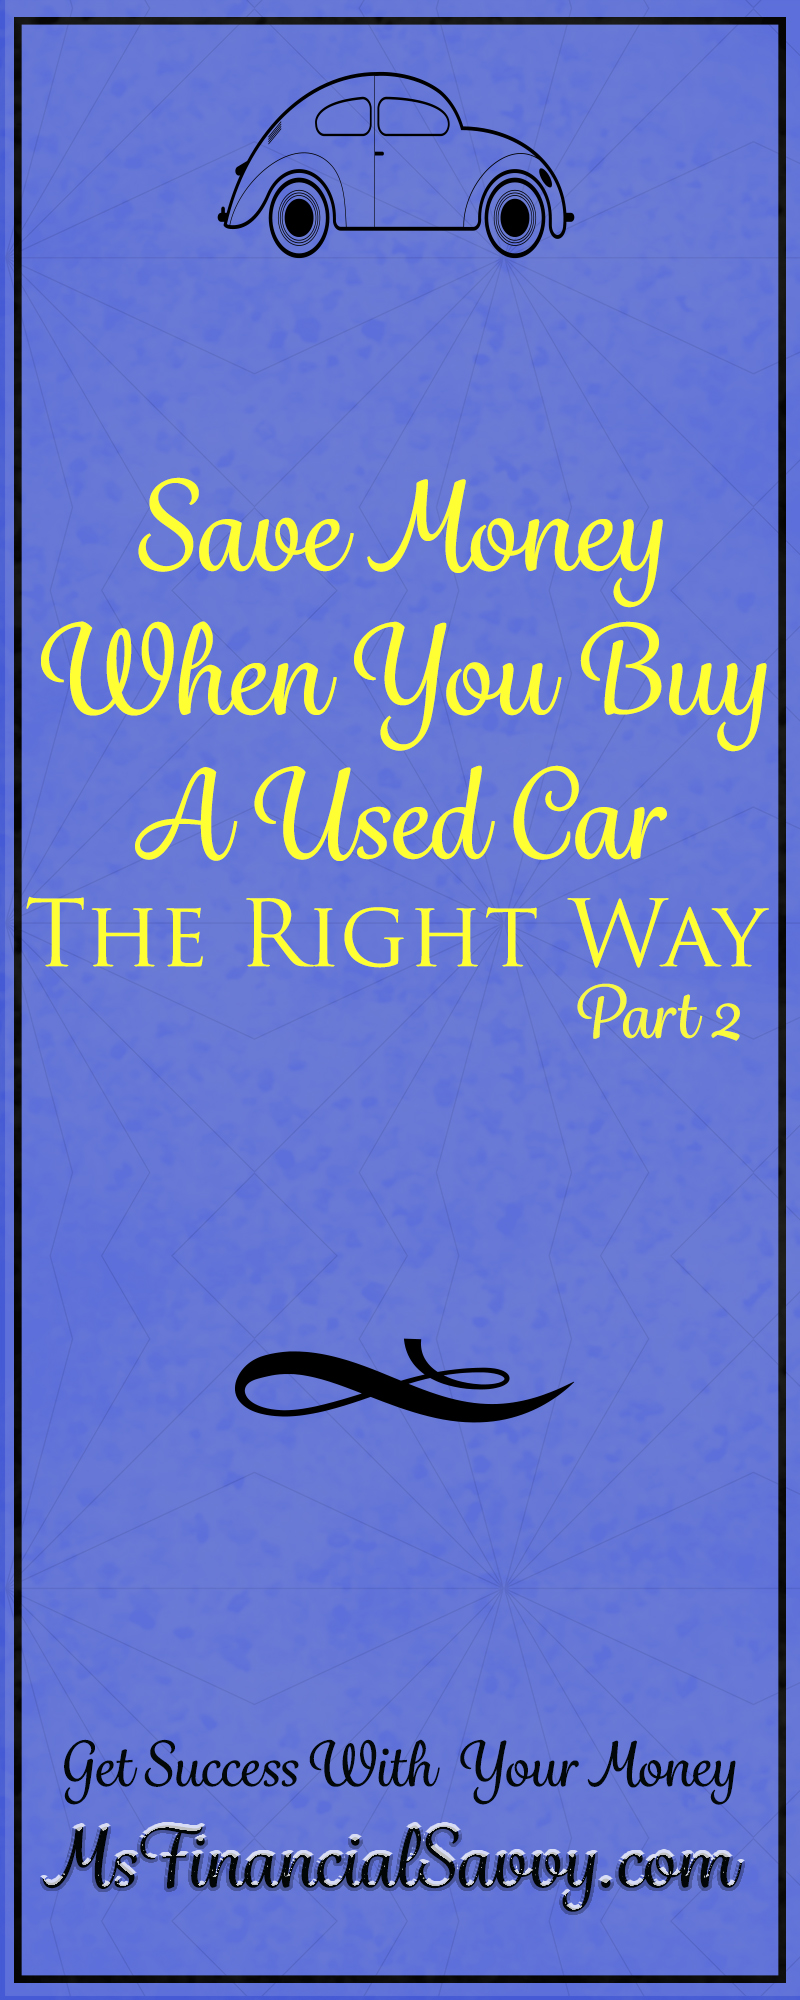 Save Money When You Buy A Used Car The Right Way Part 2